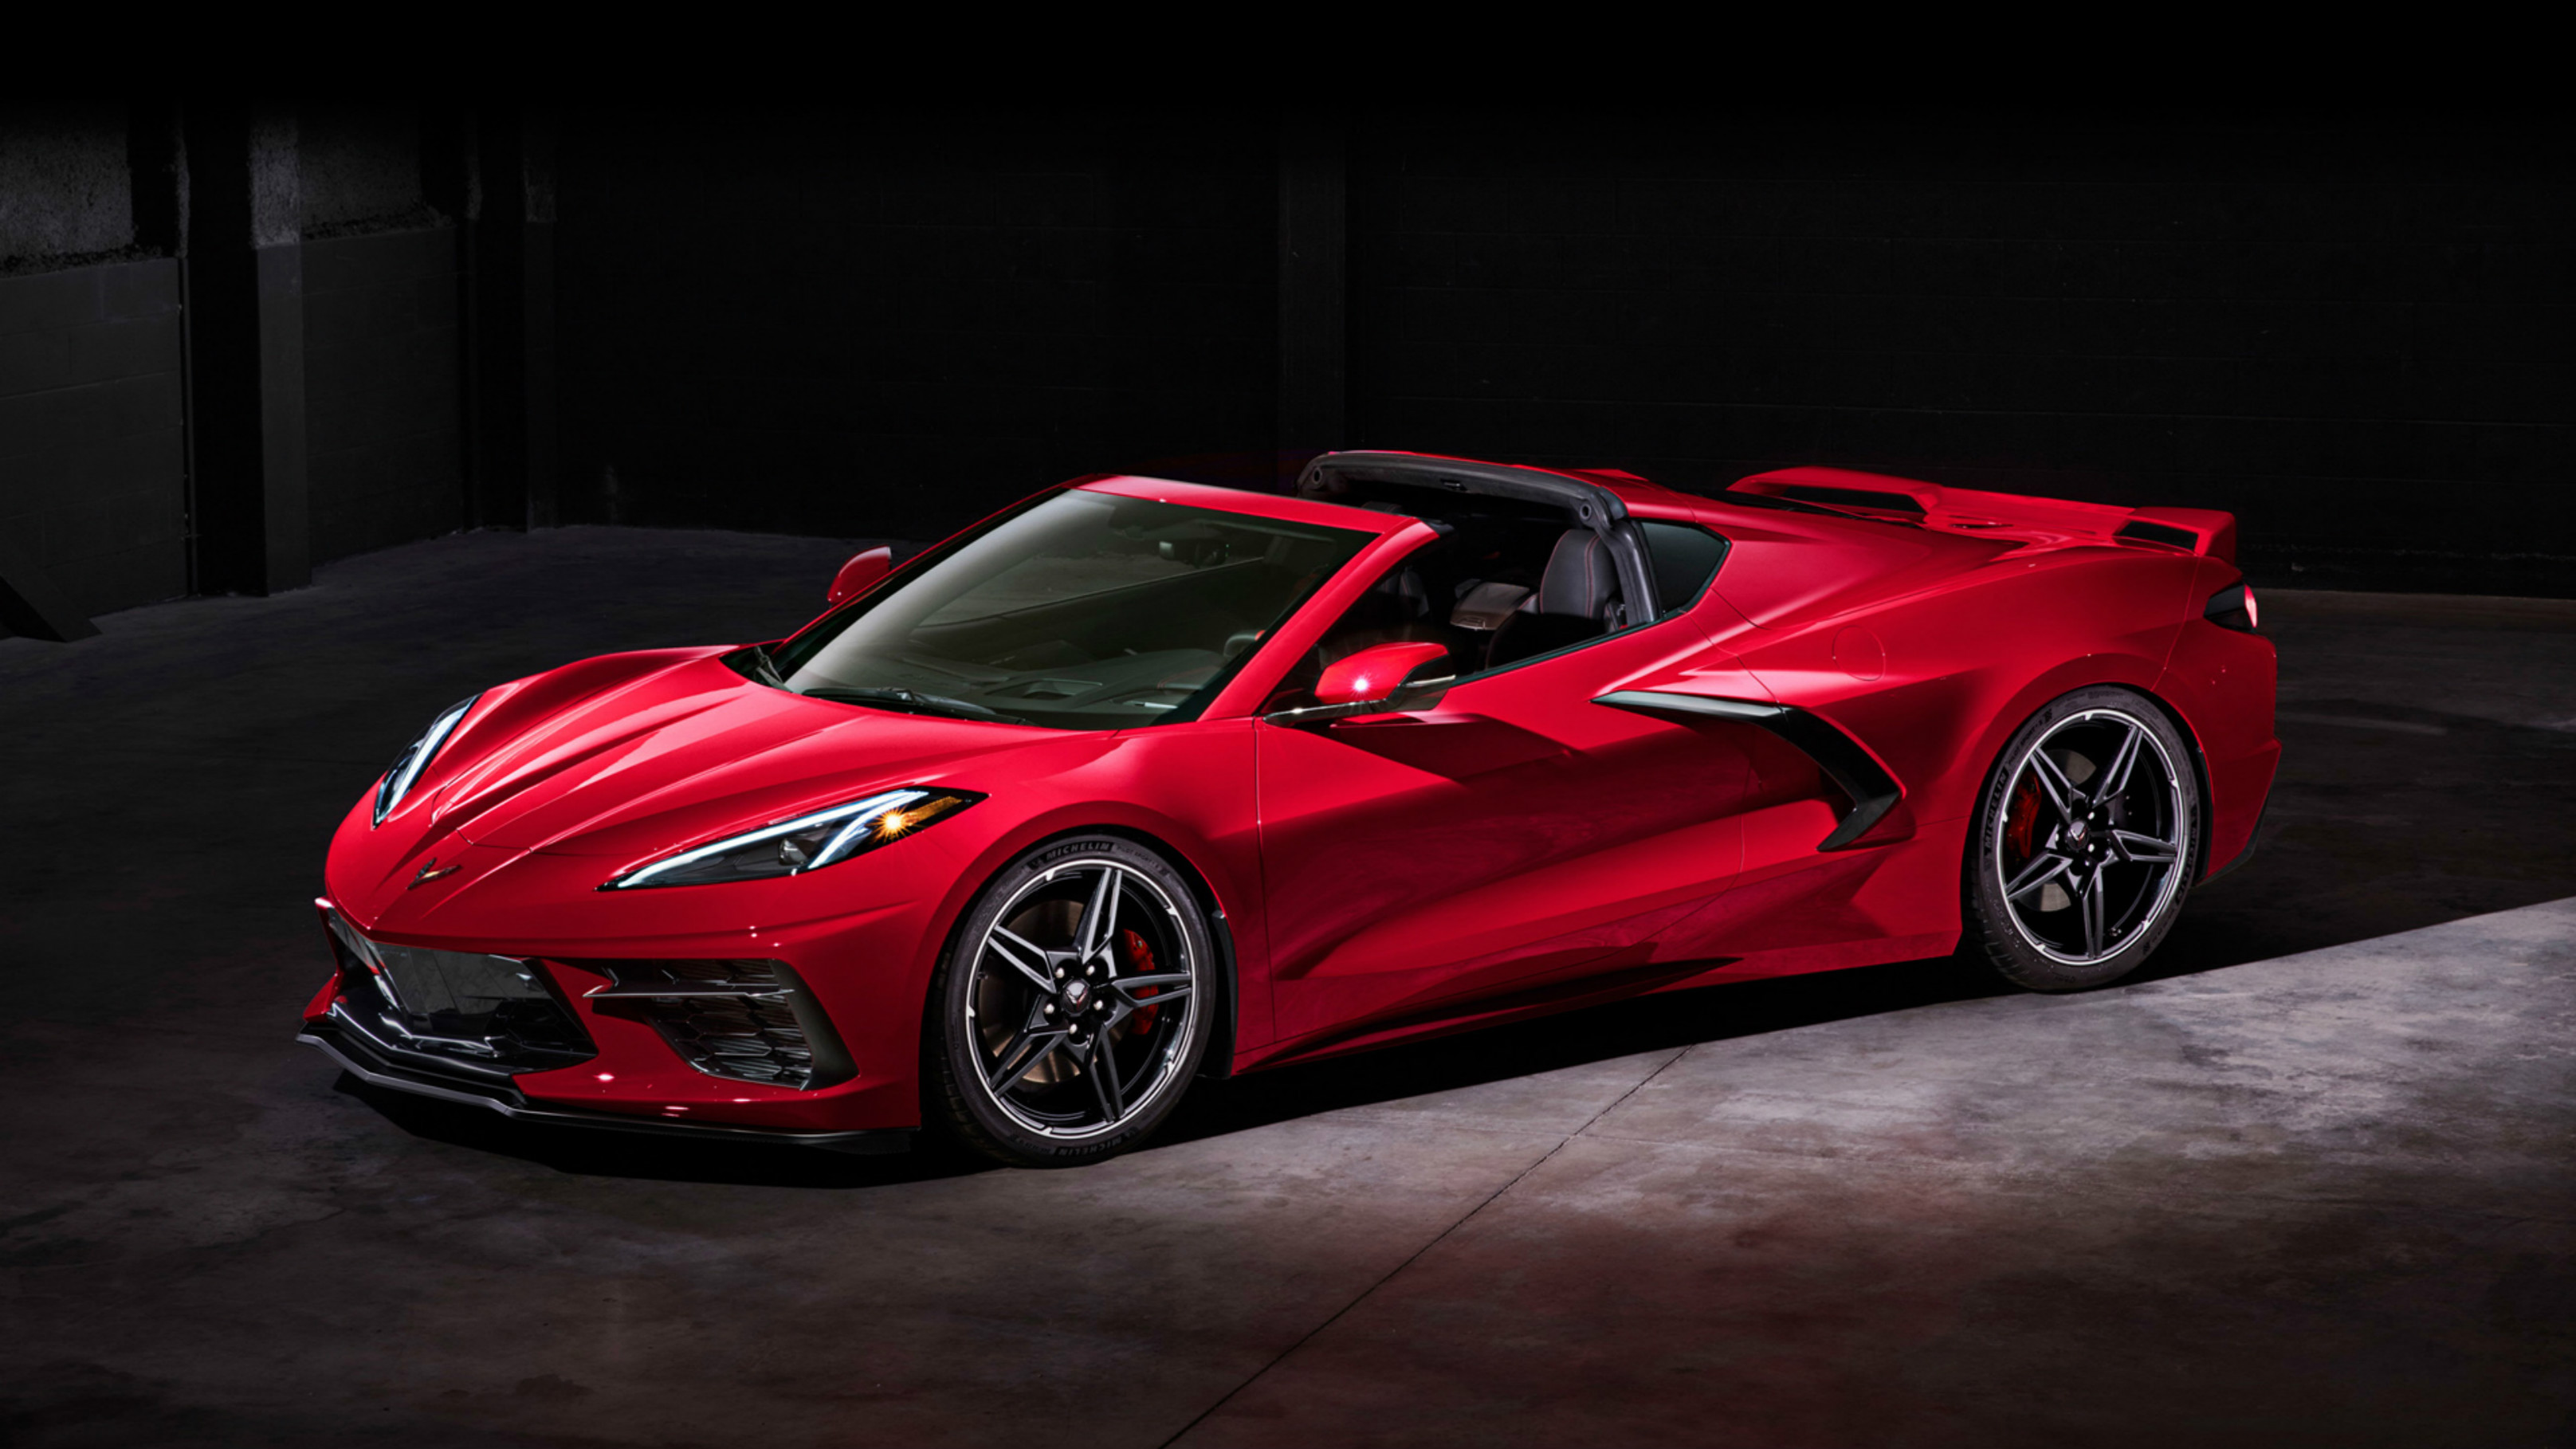 Chevrolet-Corvette-Stingray-Z51-2019-1920x1200-019.jpg